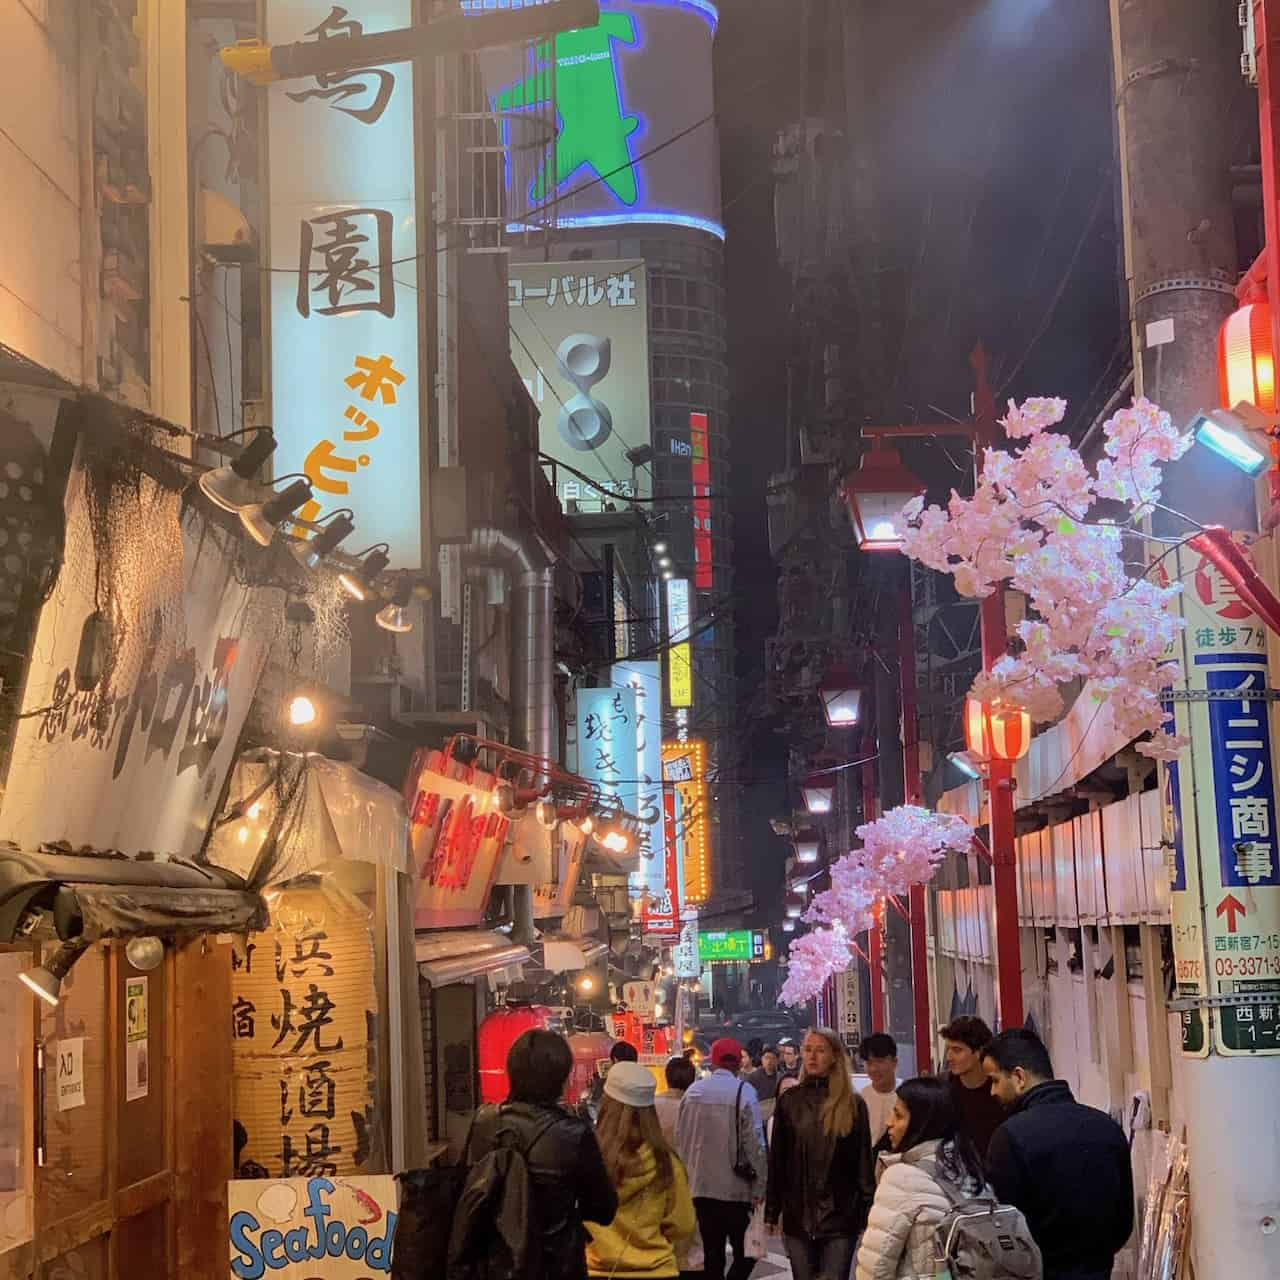 Golden Gai Piss Alley